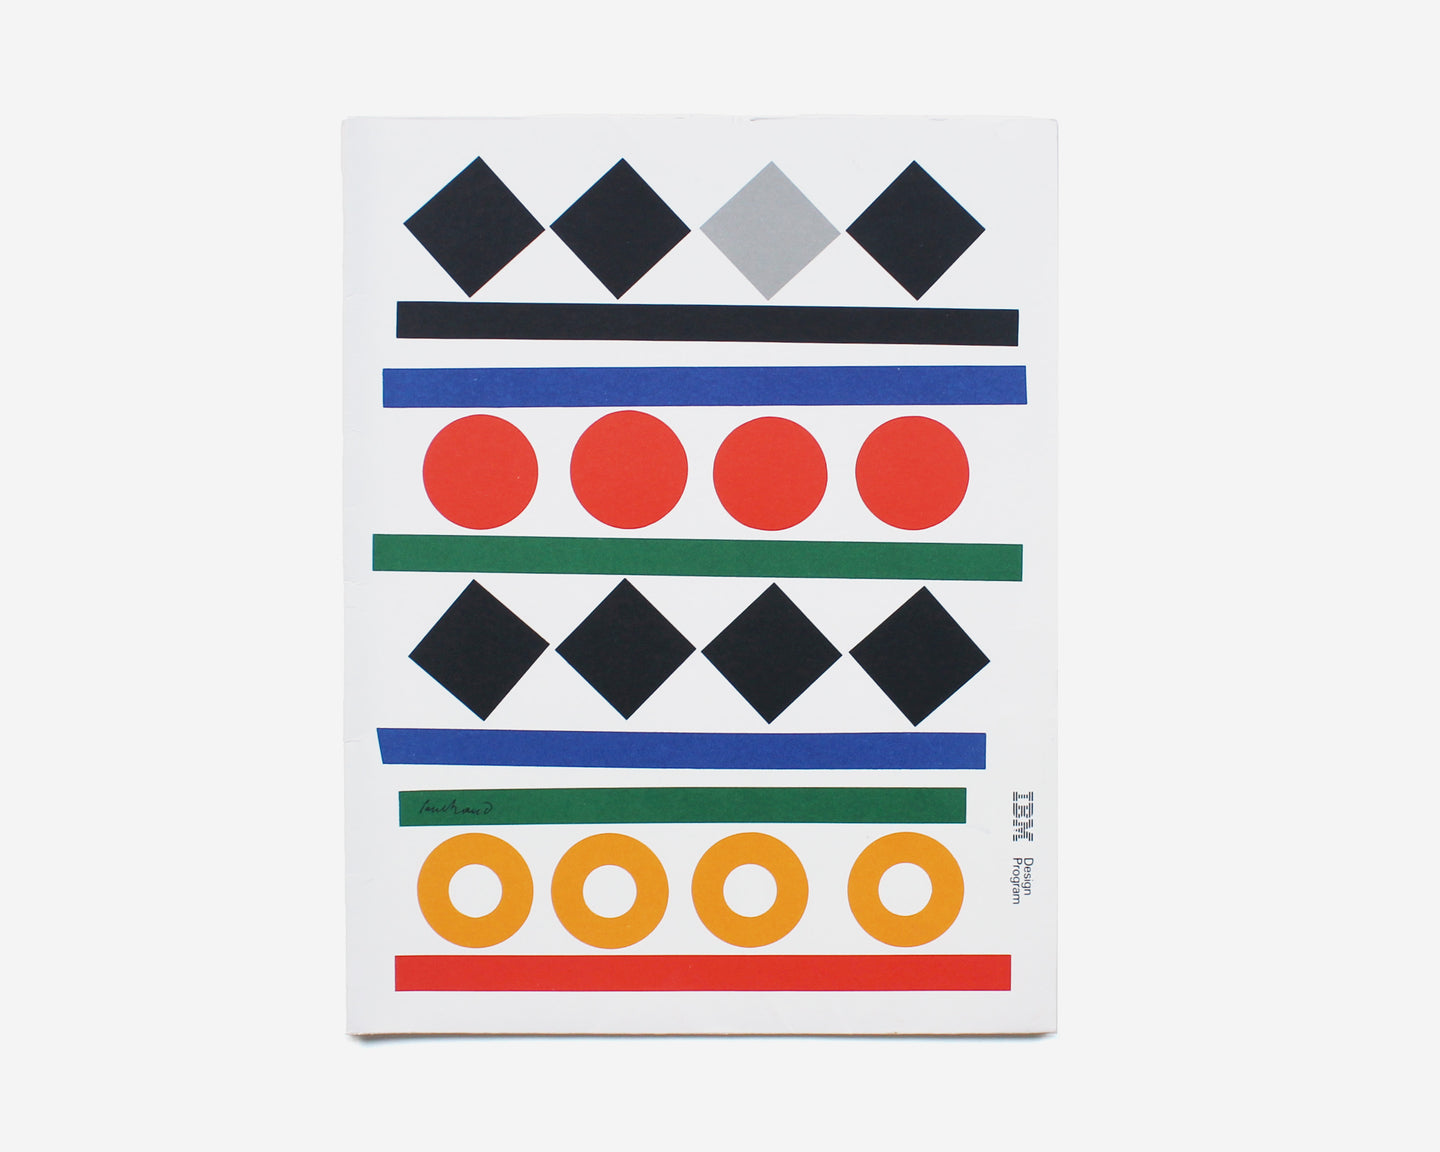 IBM Design Program, Seminar Folder [Paul Rand]